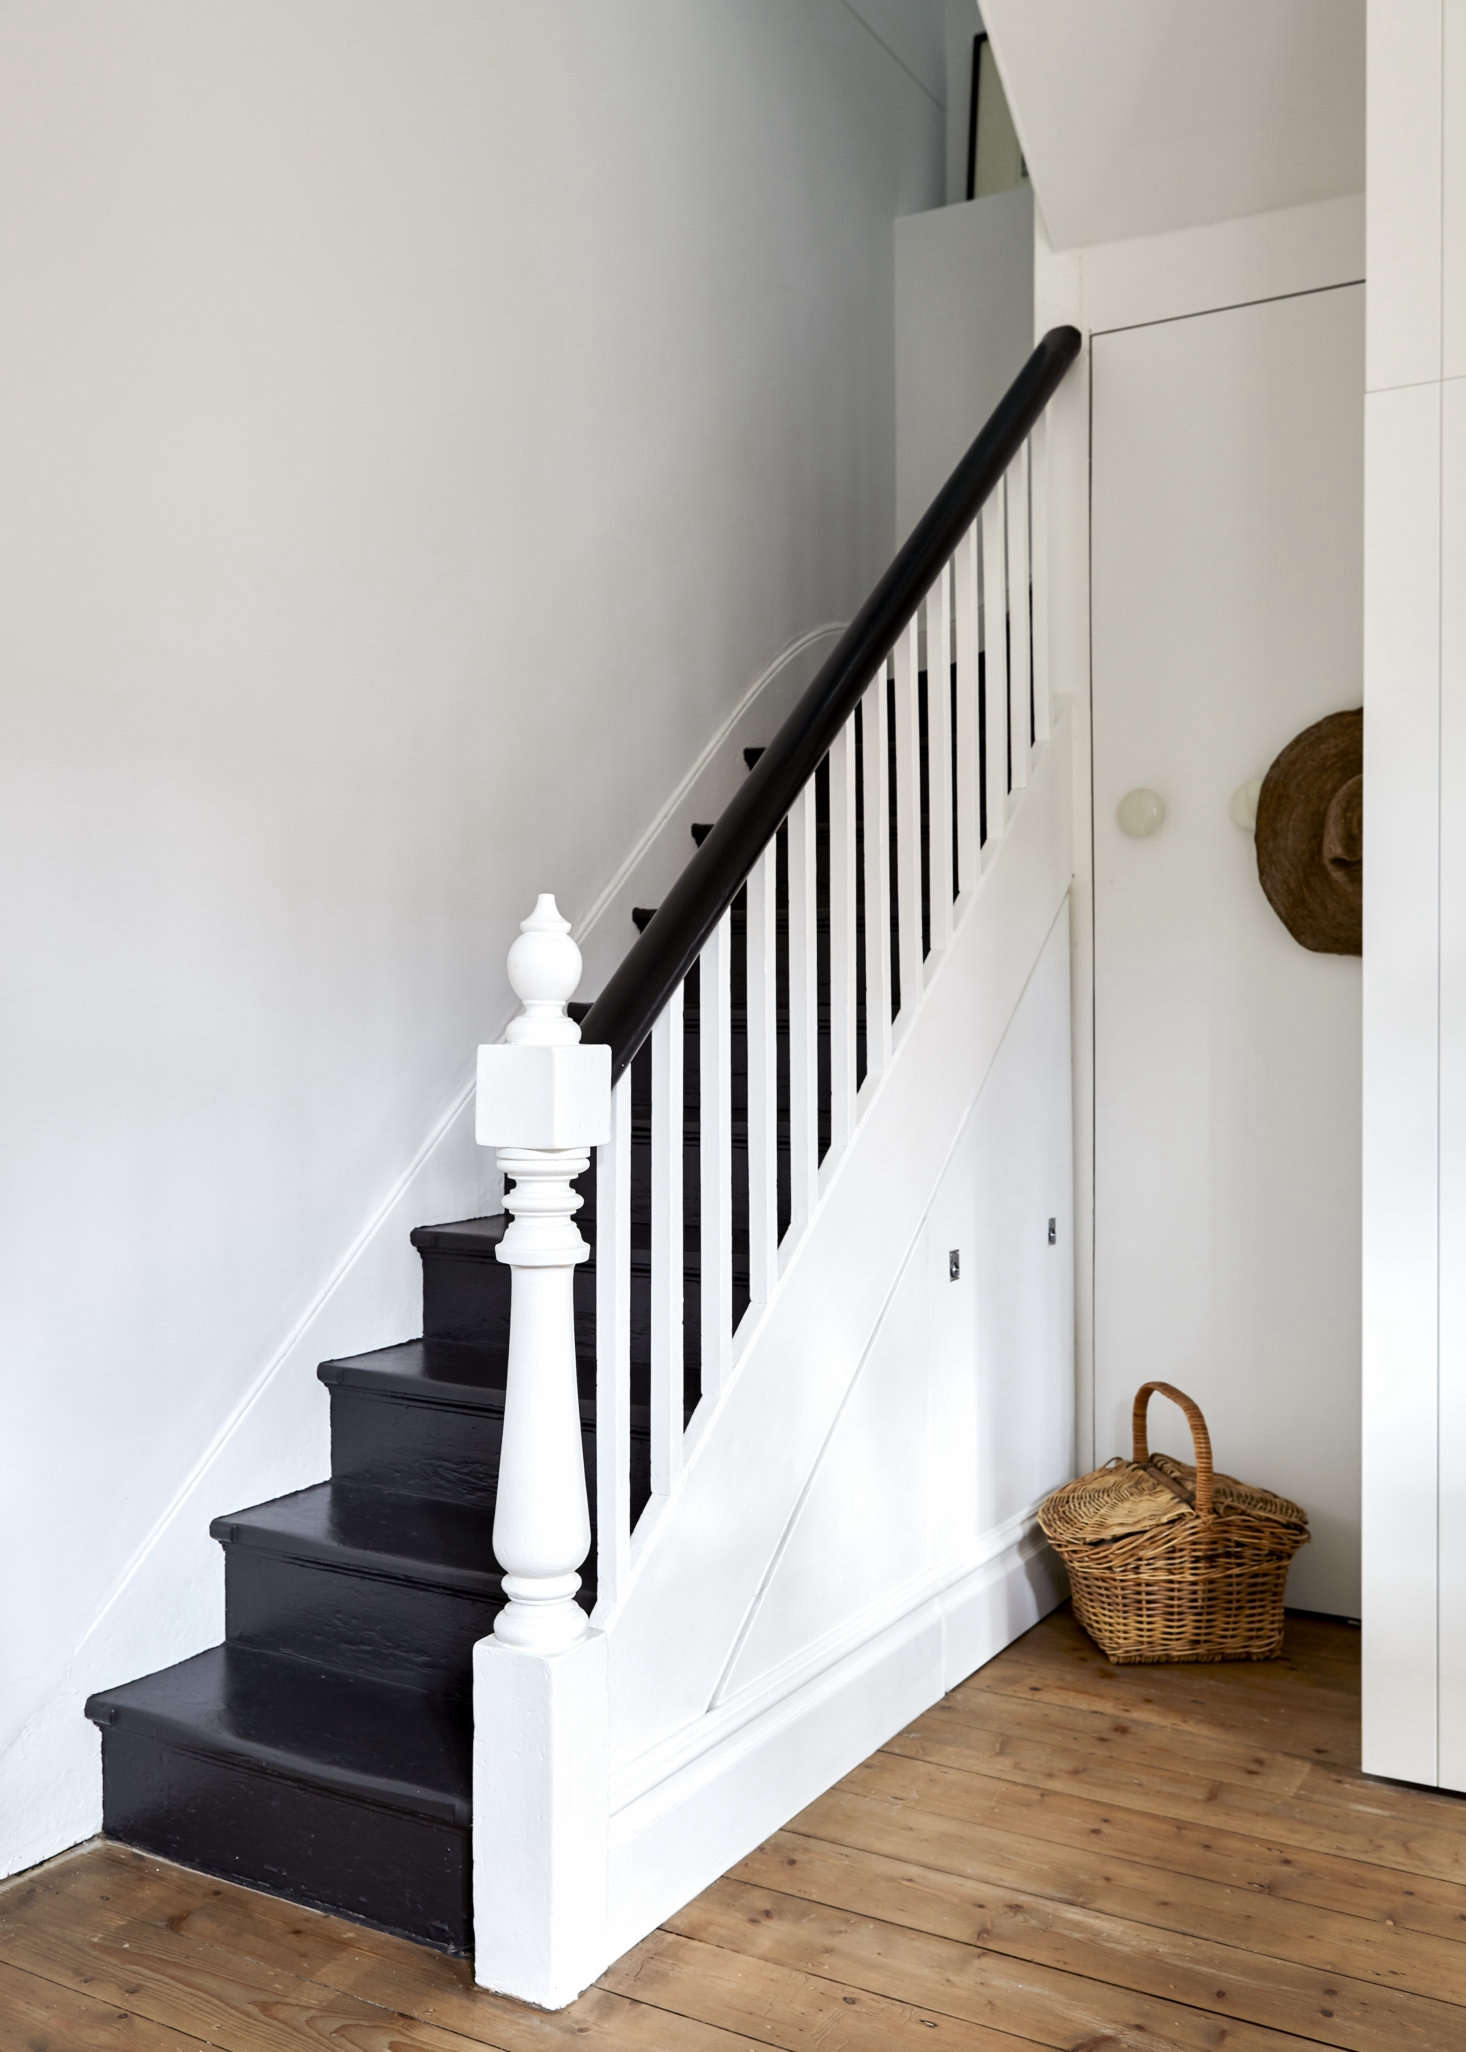 The interior had been largely stripped of original detailing and lacked a kitchen, but the entry retained its original stair and Baltic pine floor, which was replicated elsewhere. (Scroll down to see some Before shots.) Whiting used the space under the stairwell for &#8